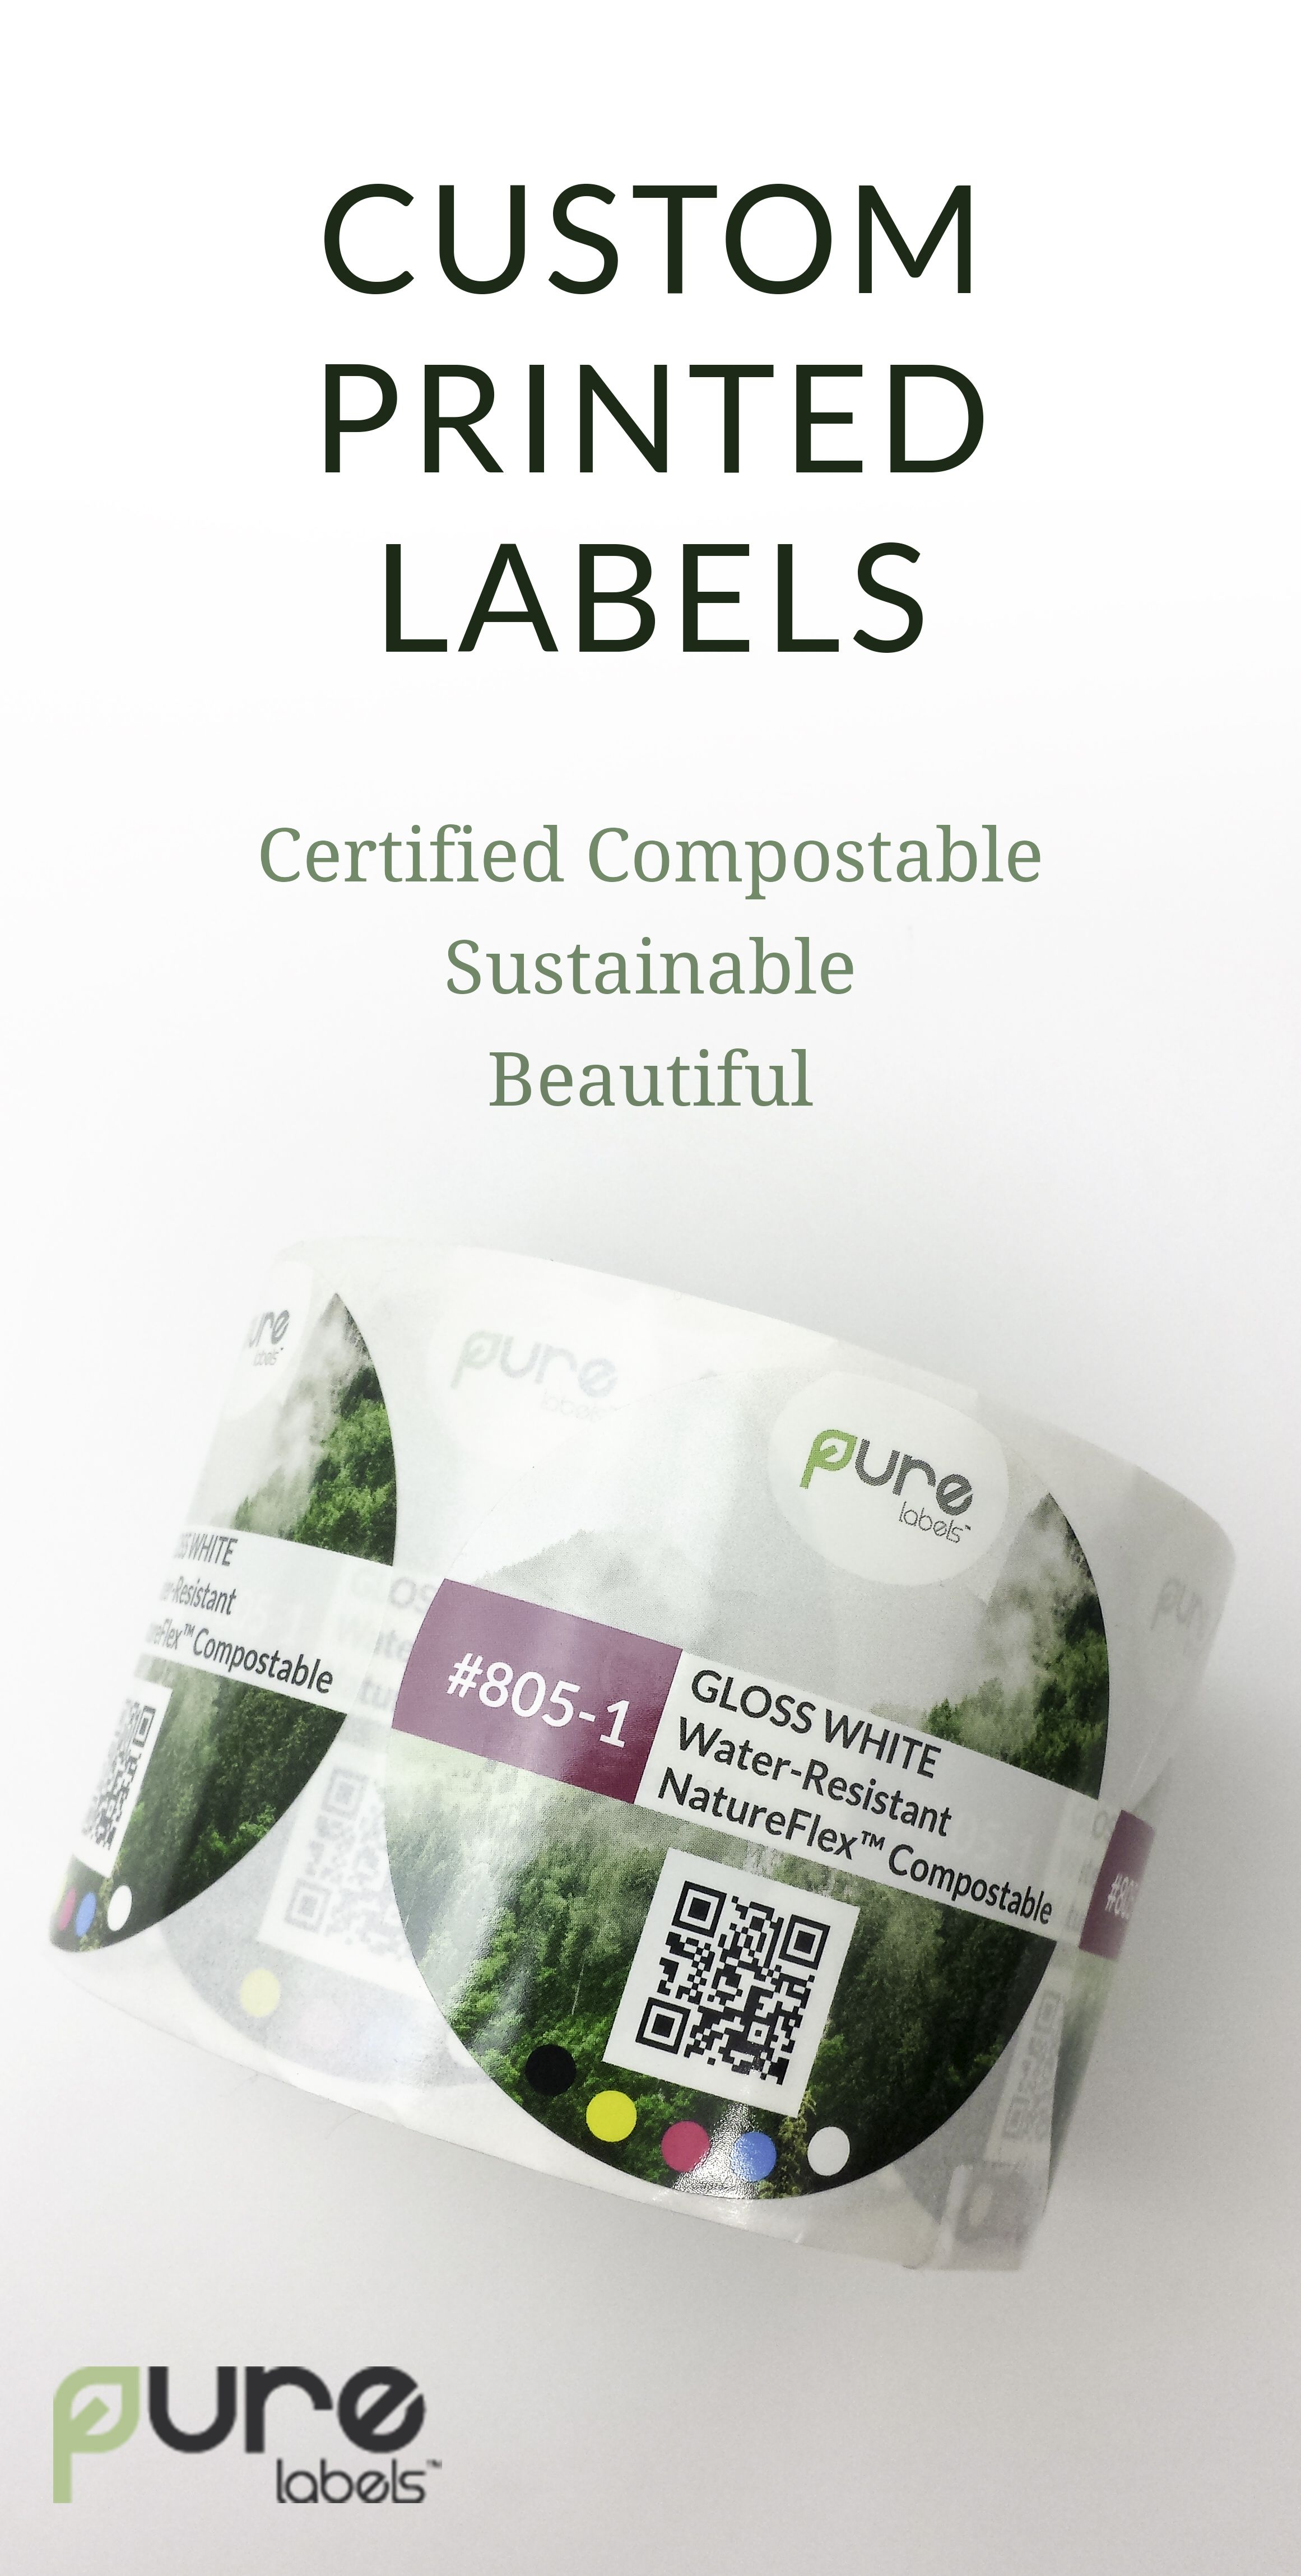 100% Compostable Custom Printed Labels, available in a variety of